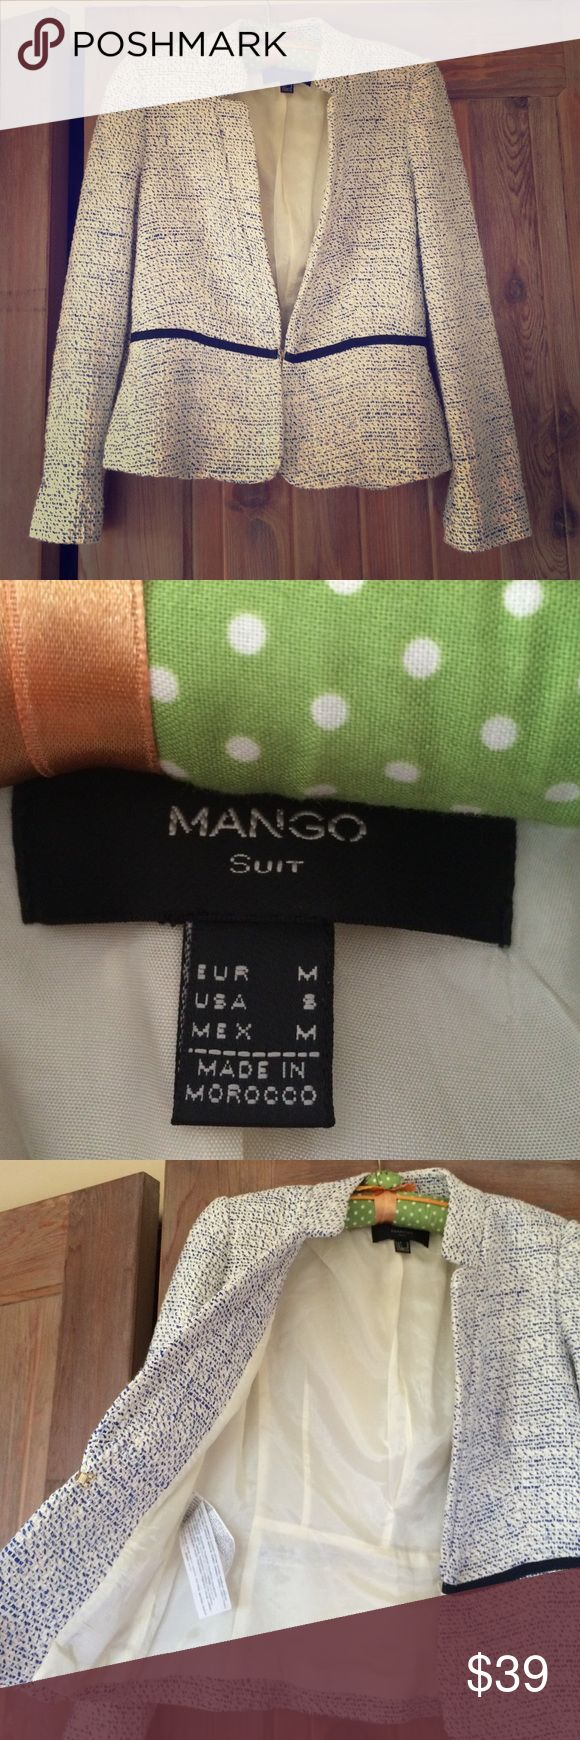 Mango Suit Blazer Blue and white Mango Blazer with deep blue ribbon detailing.   Worn once, great condition!  Bought in Austria Mango Jackets & Coats Blazers